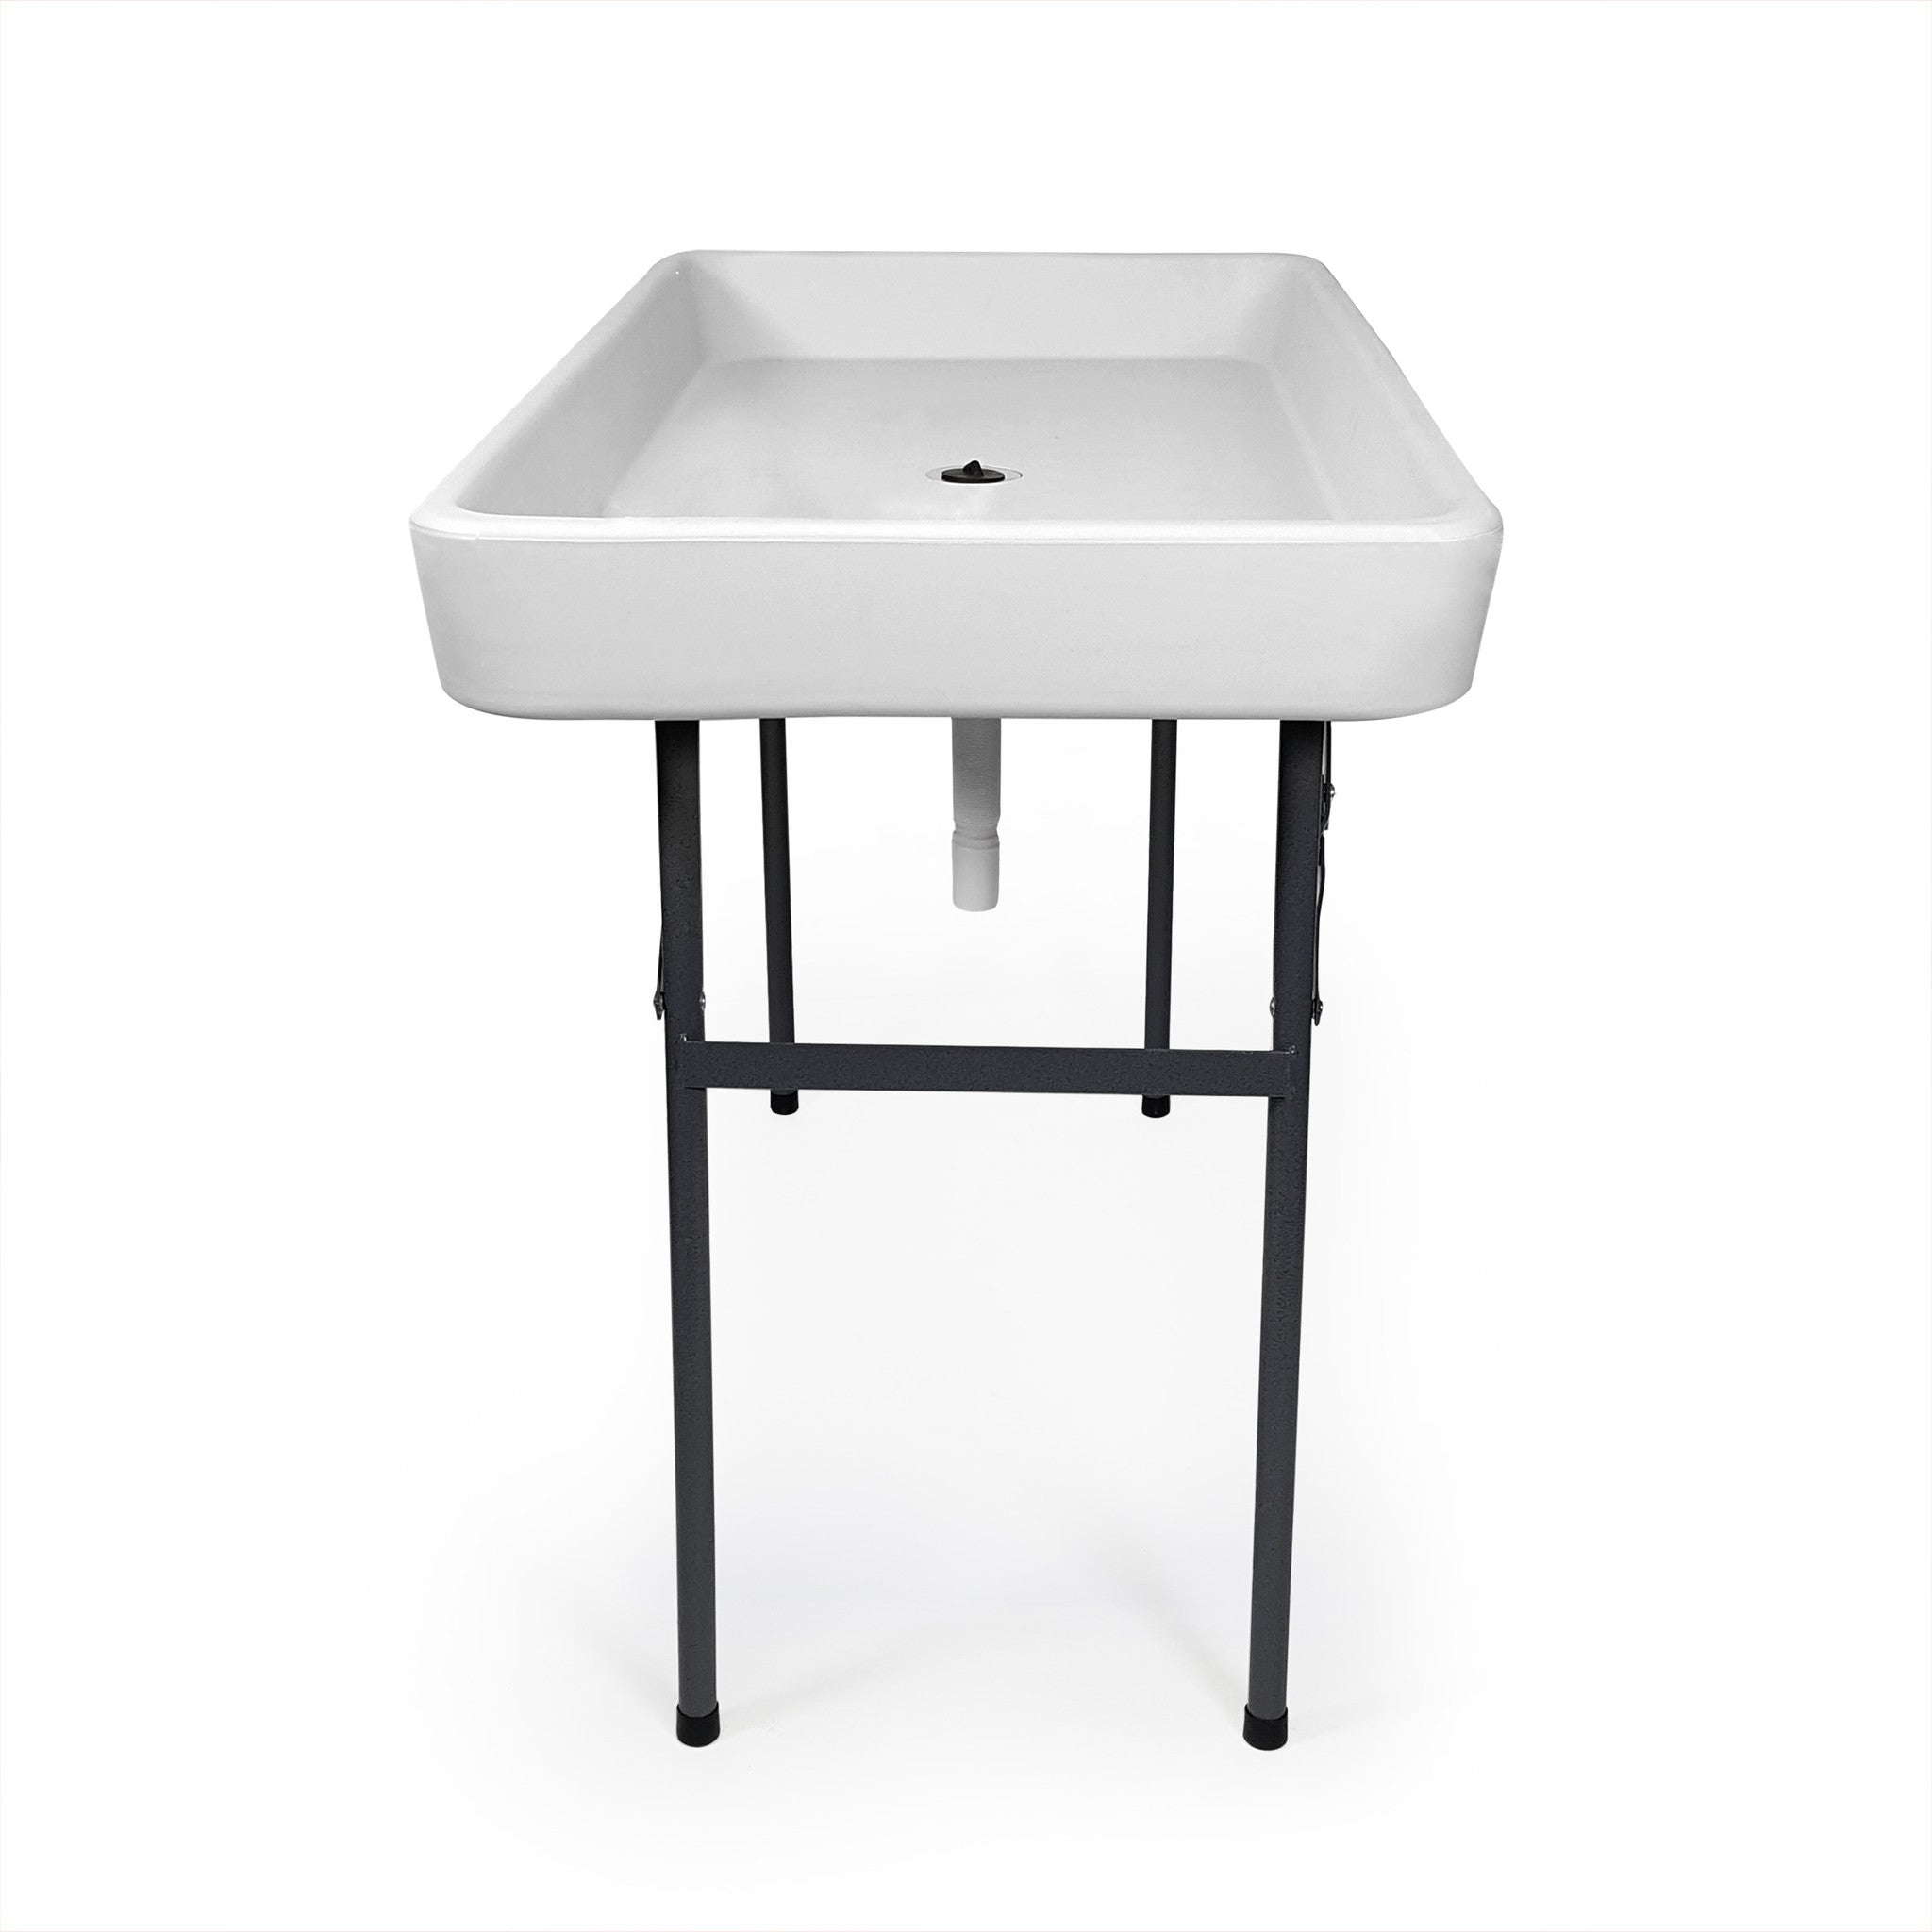 4 foot cooler ice table party table w skirt in white